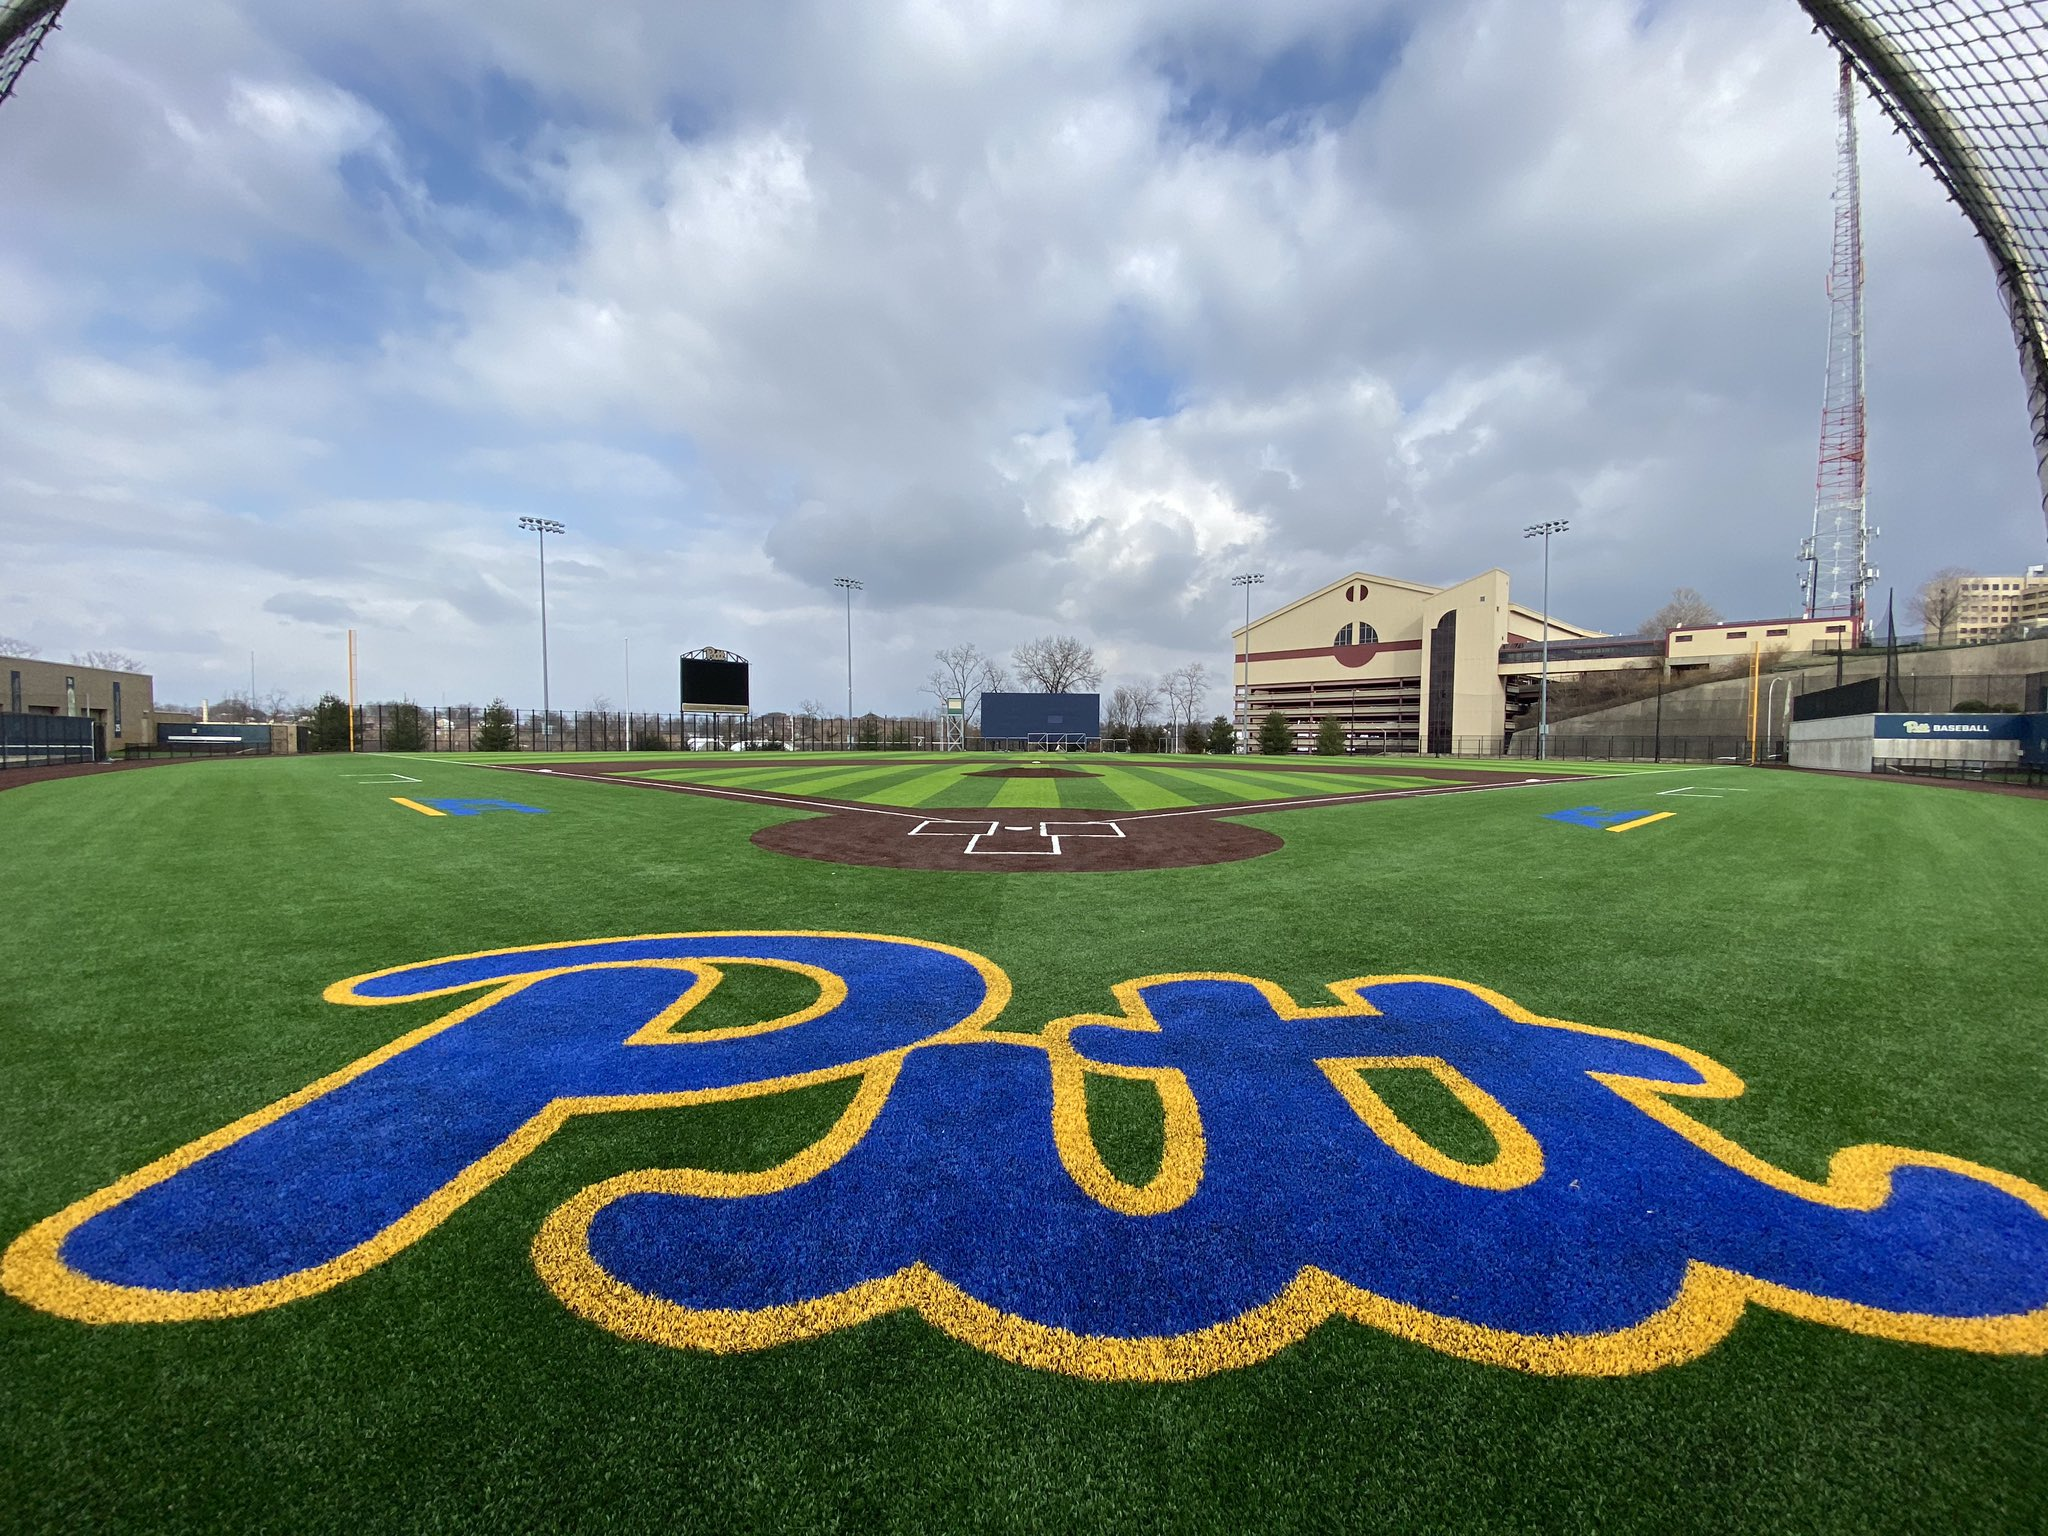 "Gotta a chance to #H2P today. Kicked it with the staff, did some metric testing on their brand new @AstroTurfUSA 💎 Series surface & shot some 🎥. 1st class staff over @Pitt_BASE! If you want to play on the best surface in the 🌎 and play for a ""Dude"" - it's simple - H2P. https://t.co/7XhDB9F5Pc"